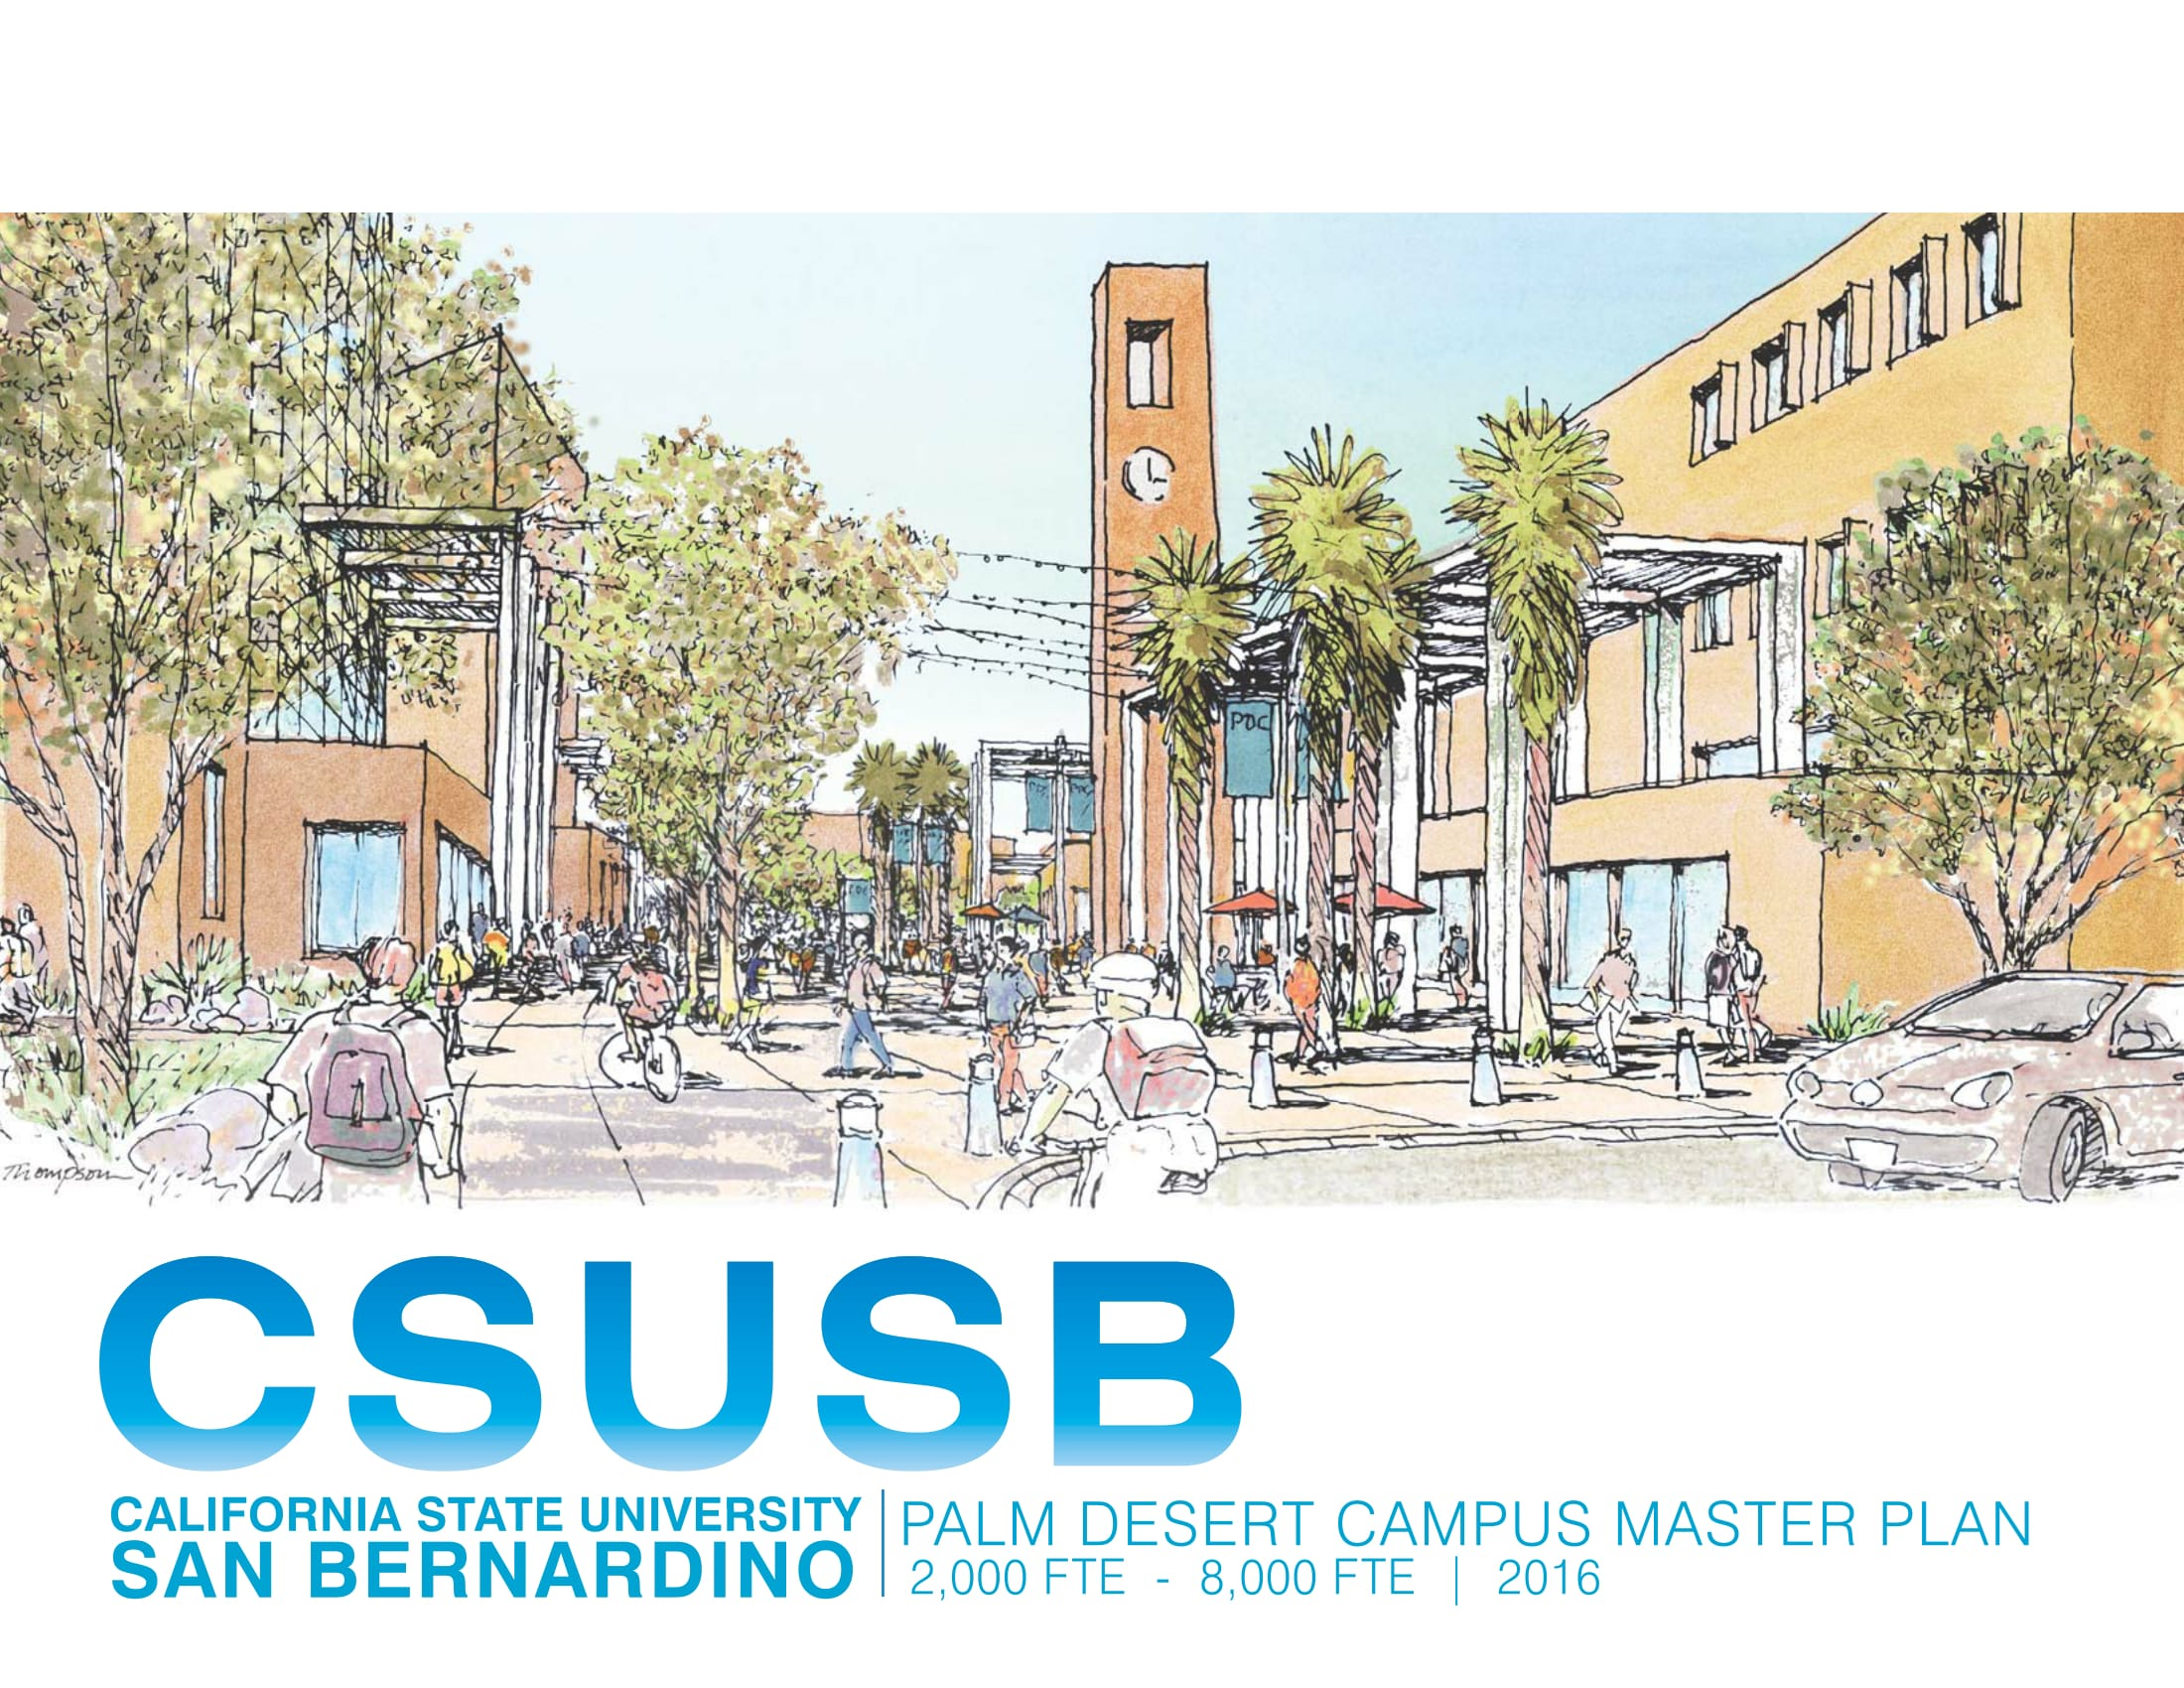 CSUSB PDC 2016 Master Plan Report